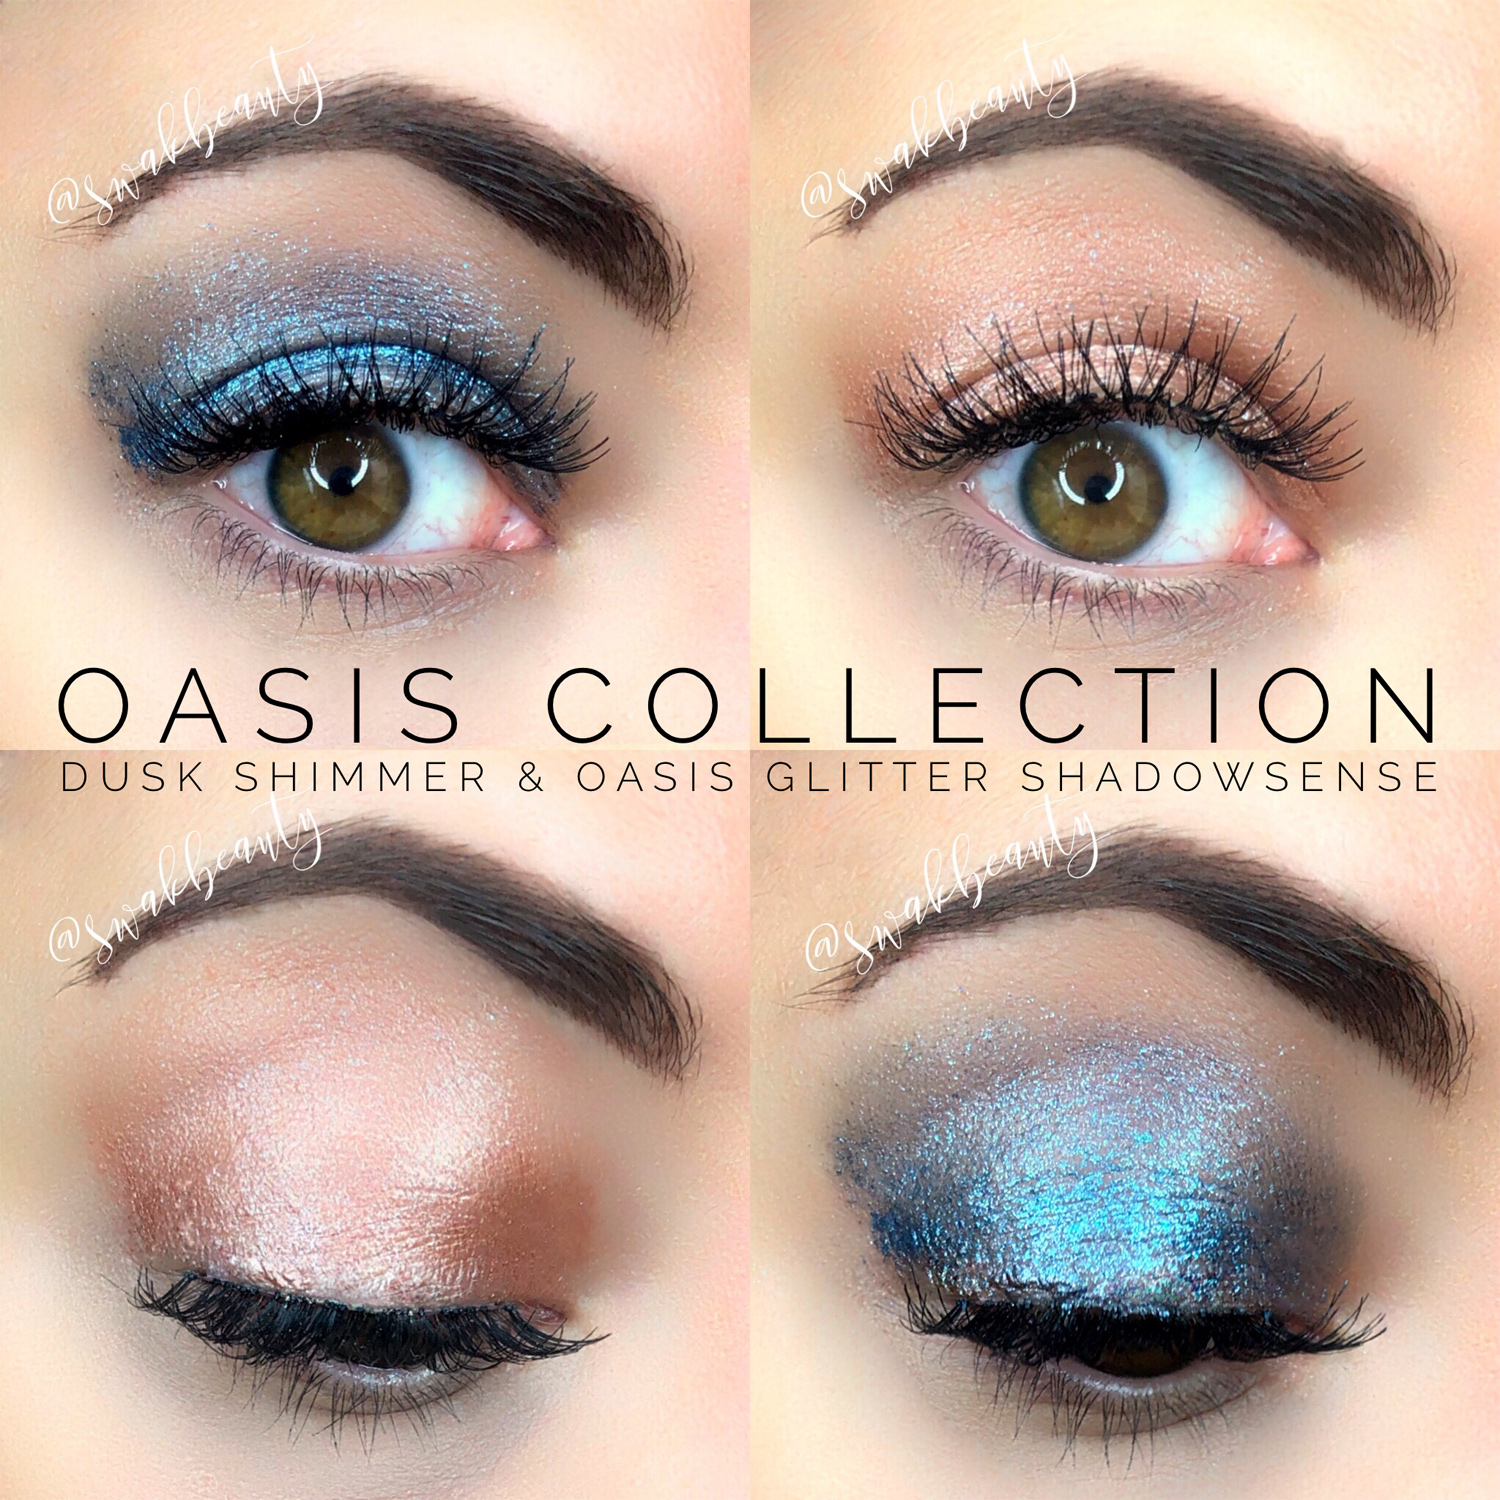 The Oasis ShadowSense Collection is HERE!